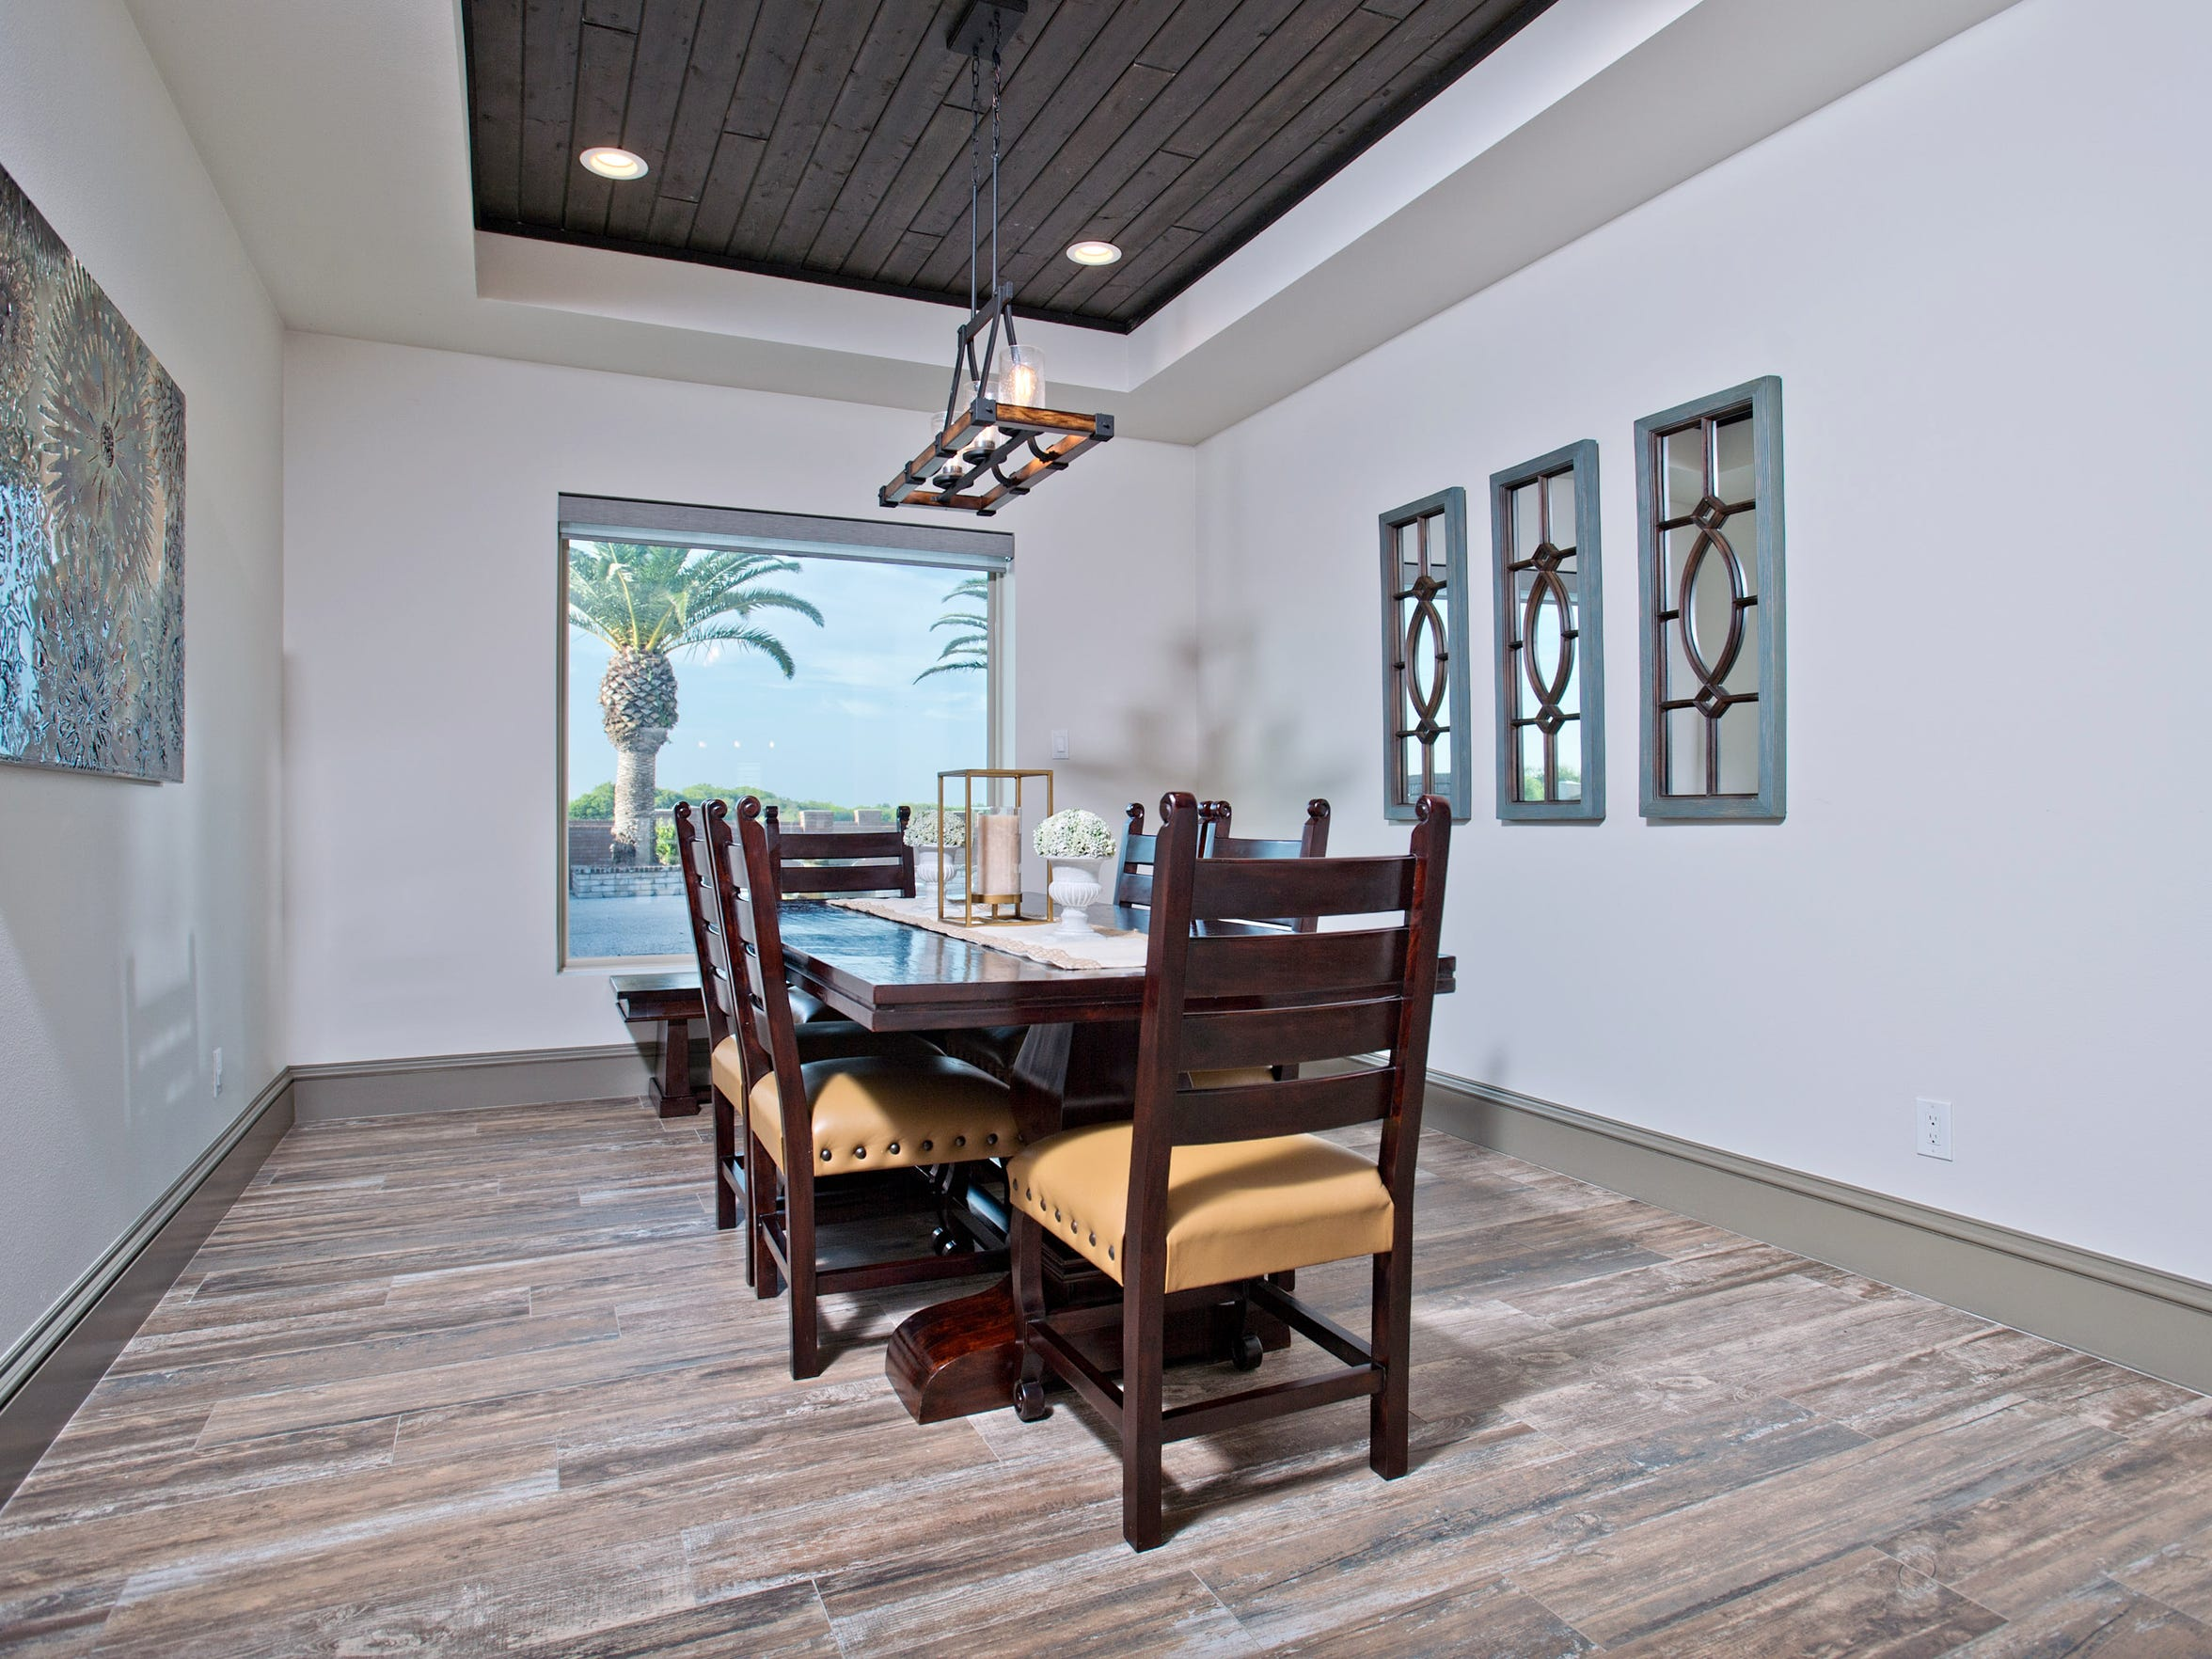 The roomy dining space features a wood recessed ceiling